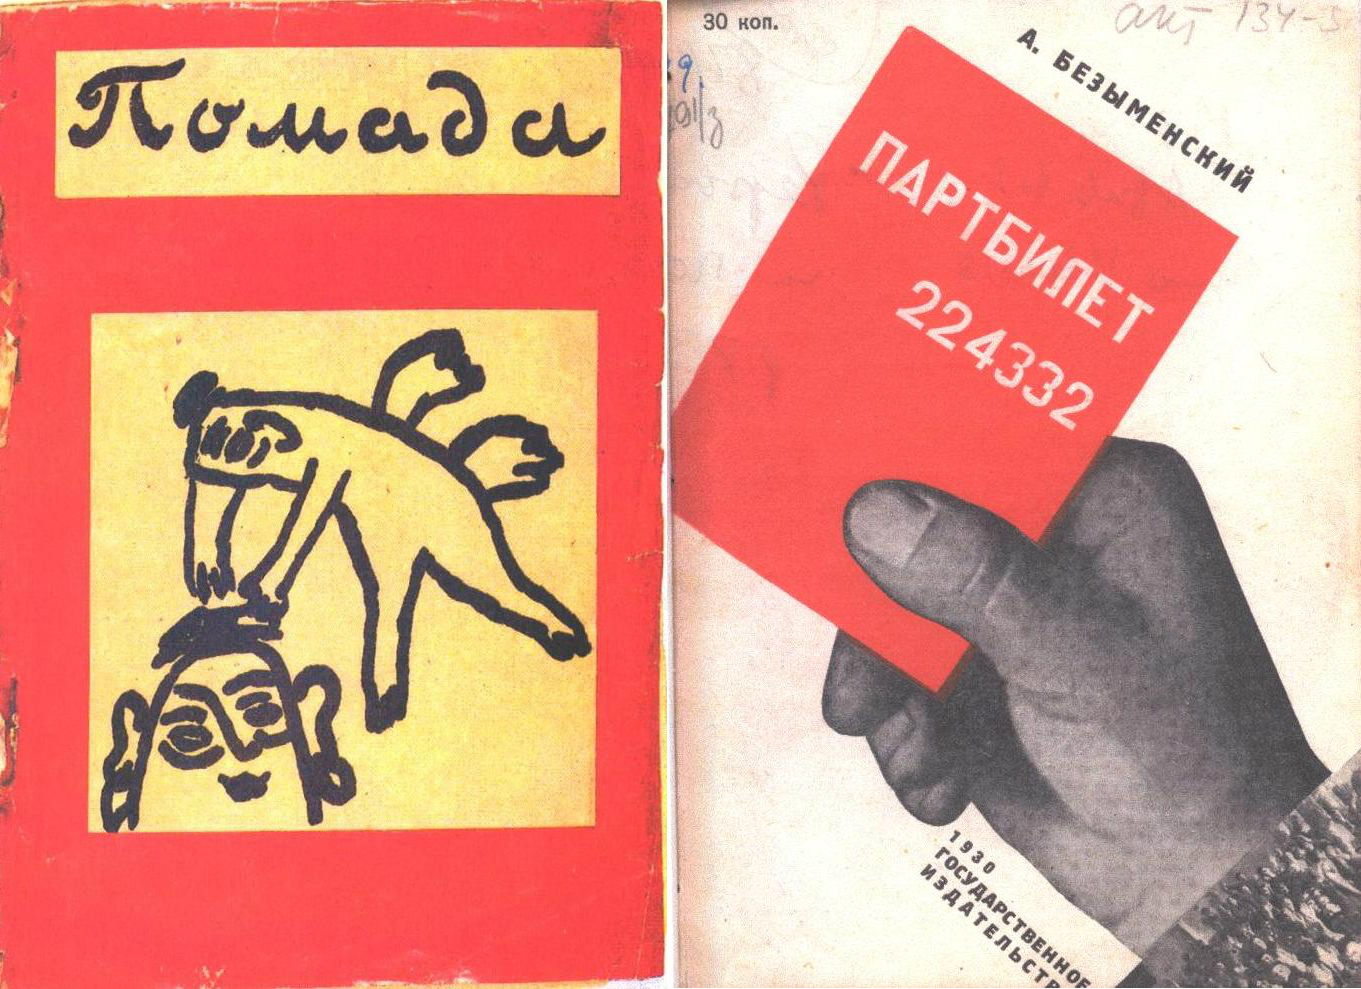 Russian avant-garde covers